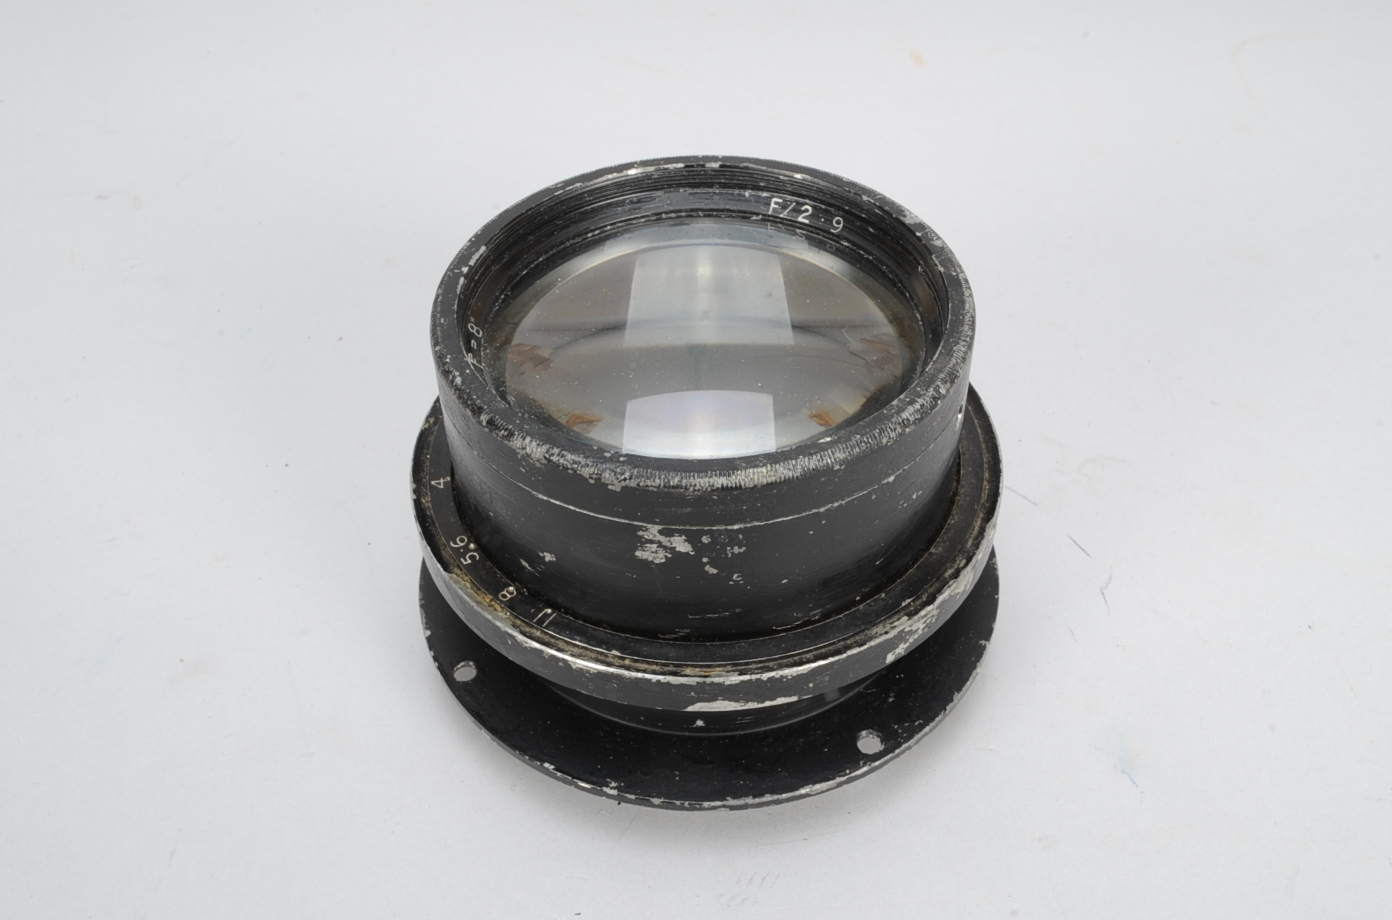 Lot 56 - An Aerial Photography Lens, black, serial no 415494, 8in f/2.9, no maker's name, marked A.M. 14A/